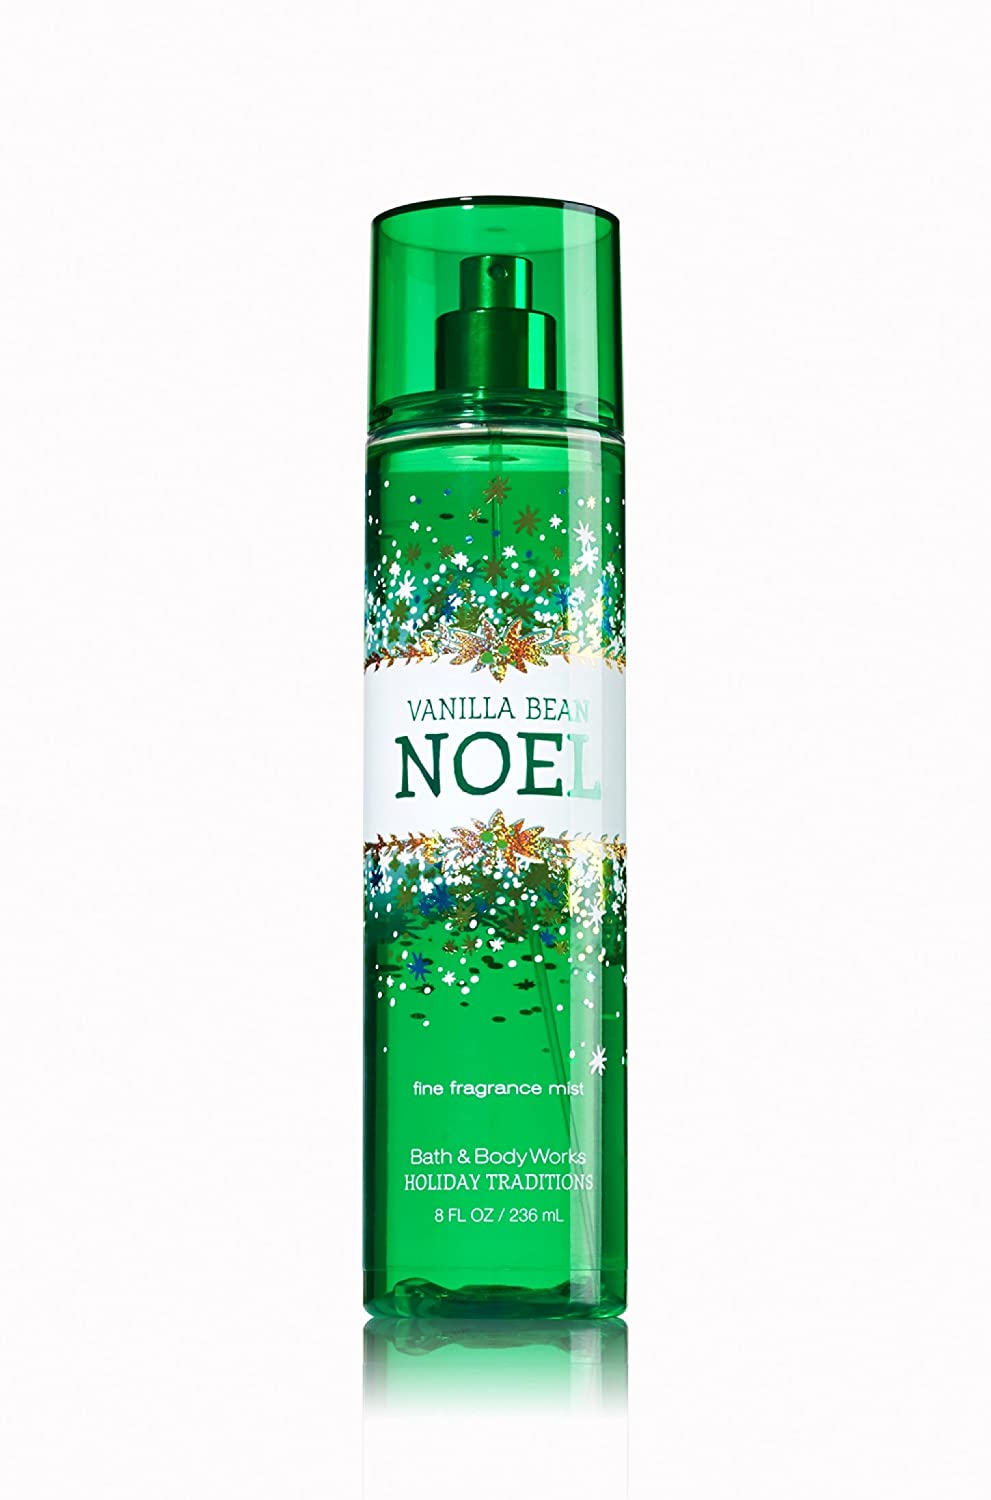 Bath & Body Works Vanilla Bean Noel 8.0 oz Fine Fragrance Mist